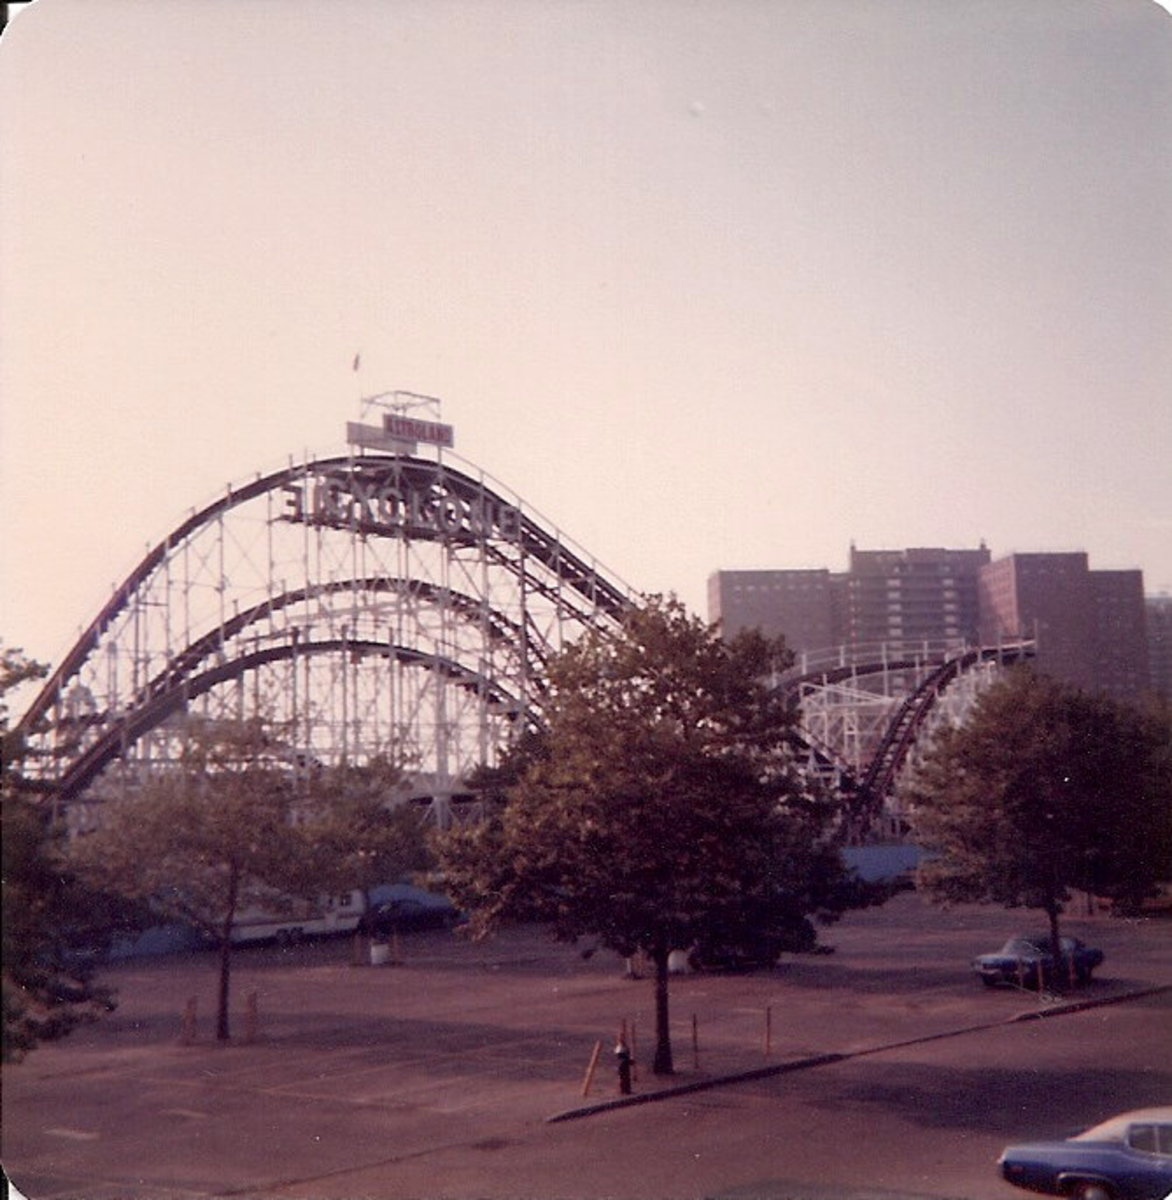 The Cyclone at Coney Island, the setting for the Beast's demise.  The scene was actually shot at the Long Beach Amusement Park in California.